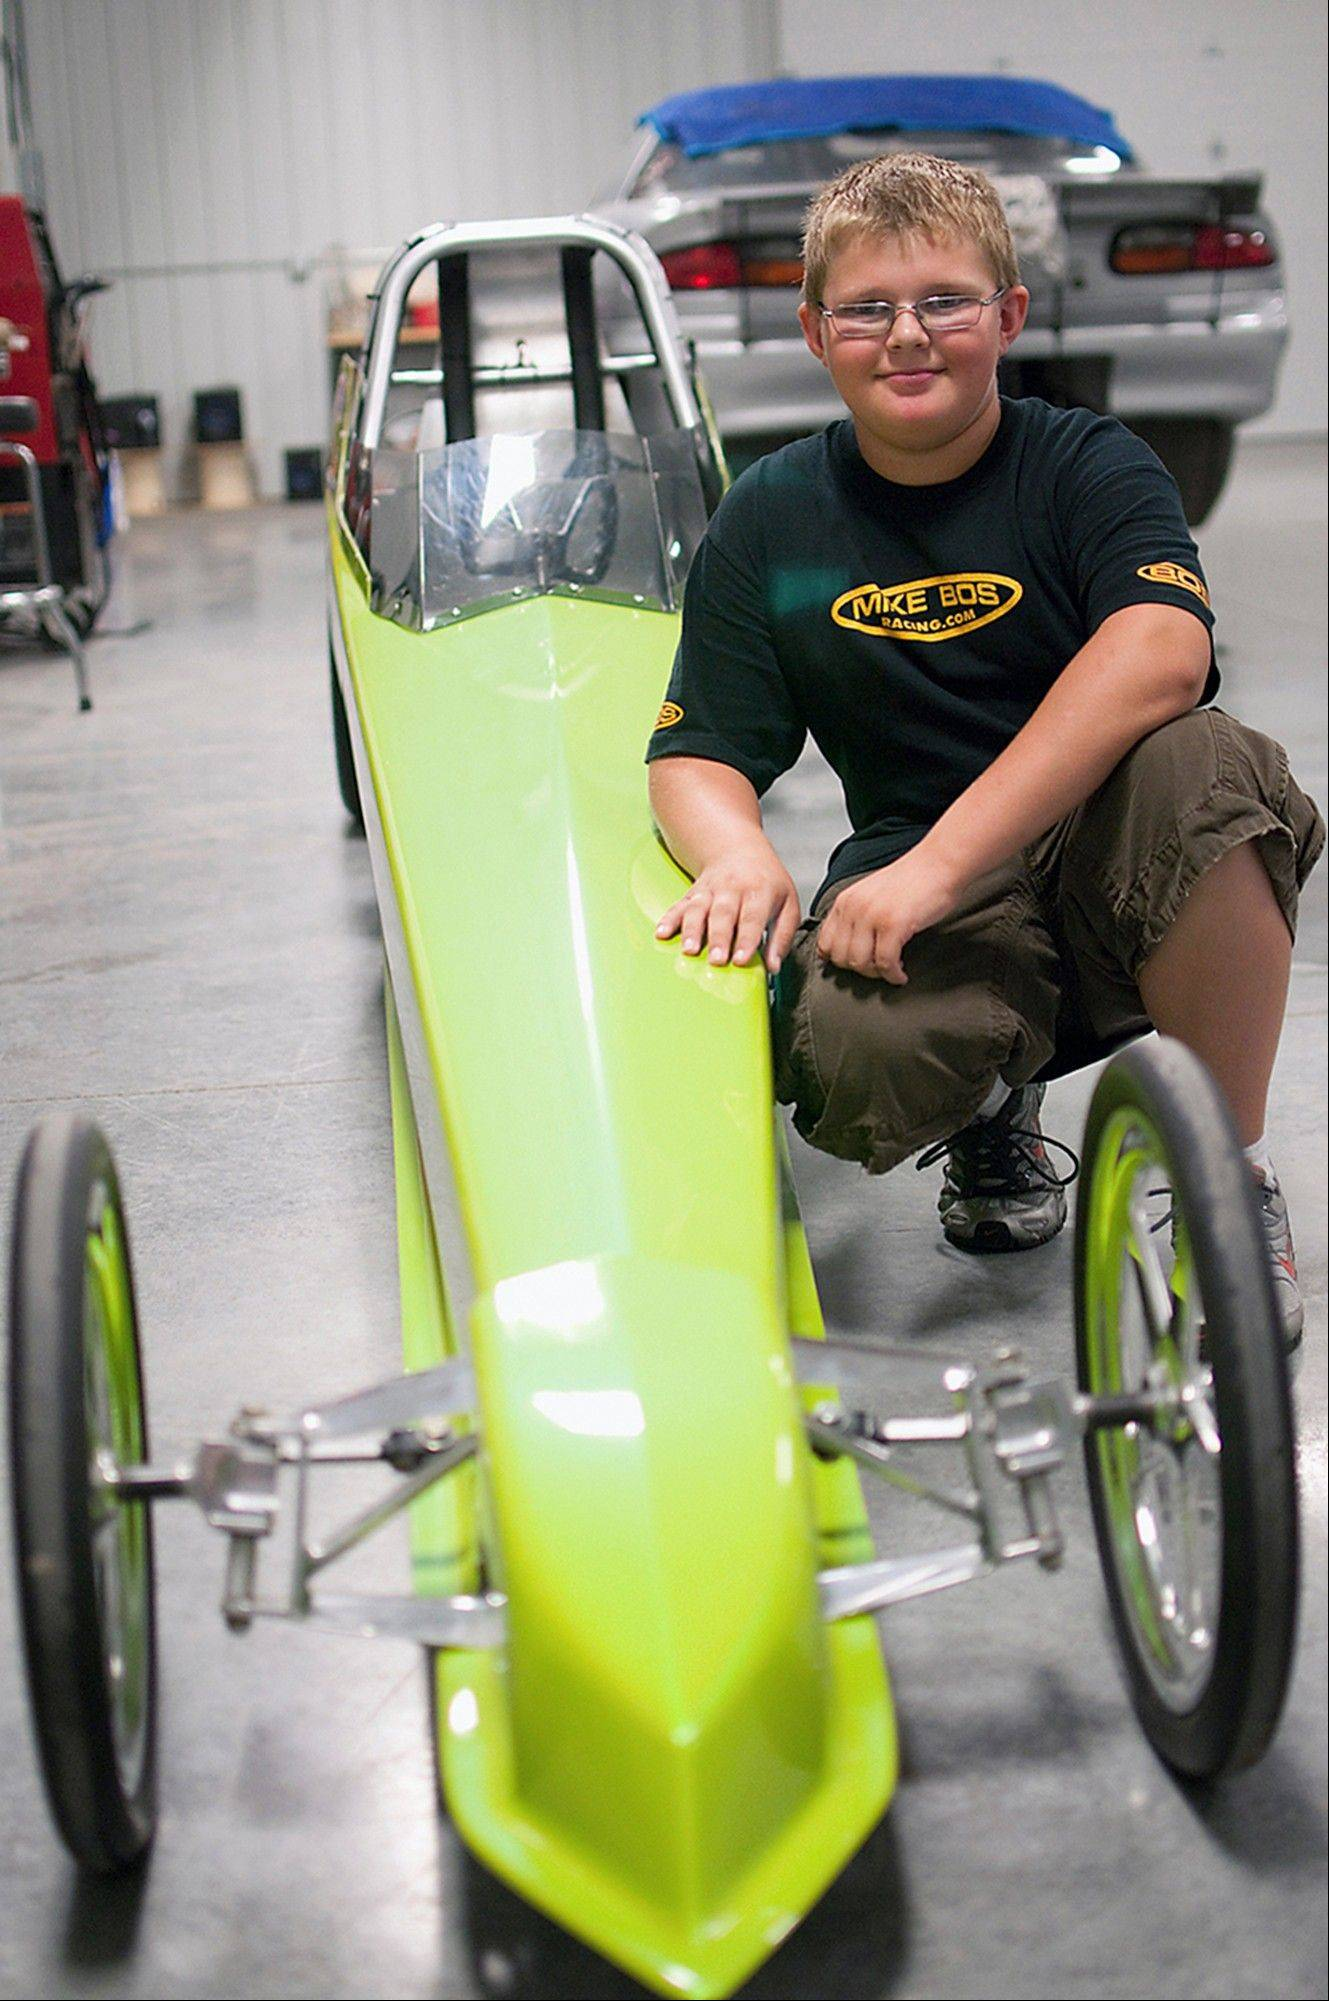 Zach Lewis, 11, of Knoxville has three years' experience as a drag racer.